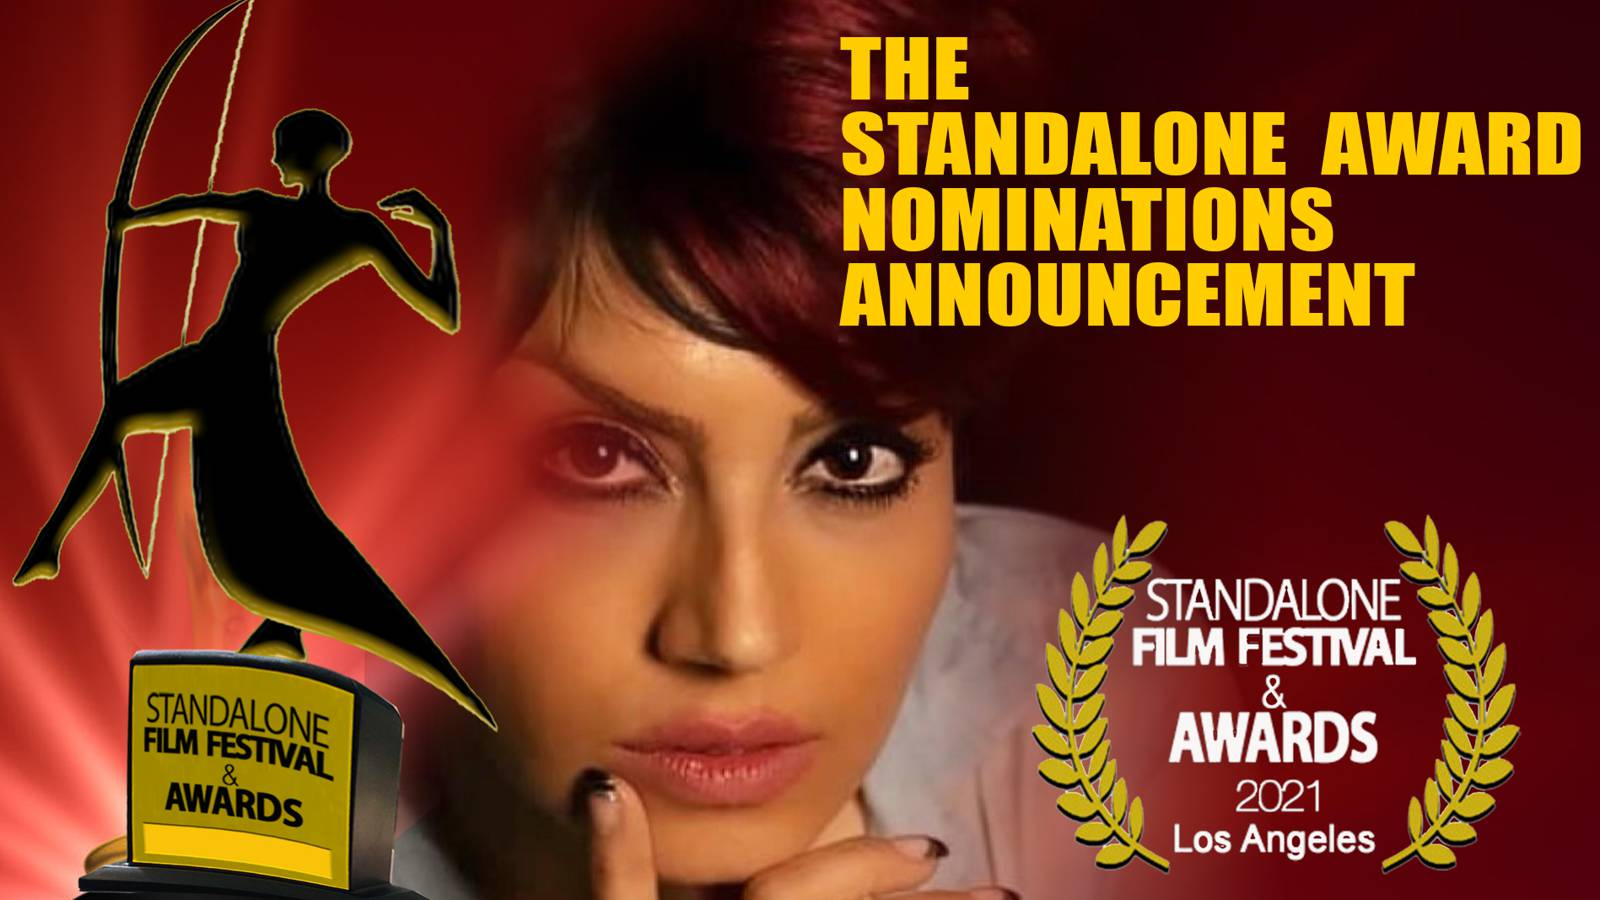 Award Nominees Announcement